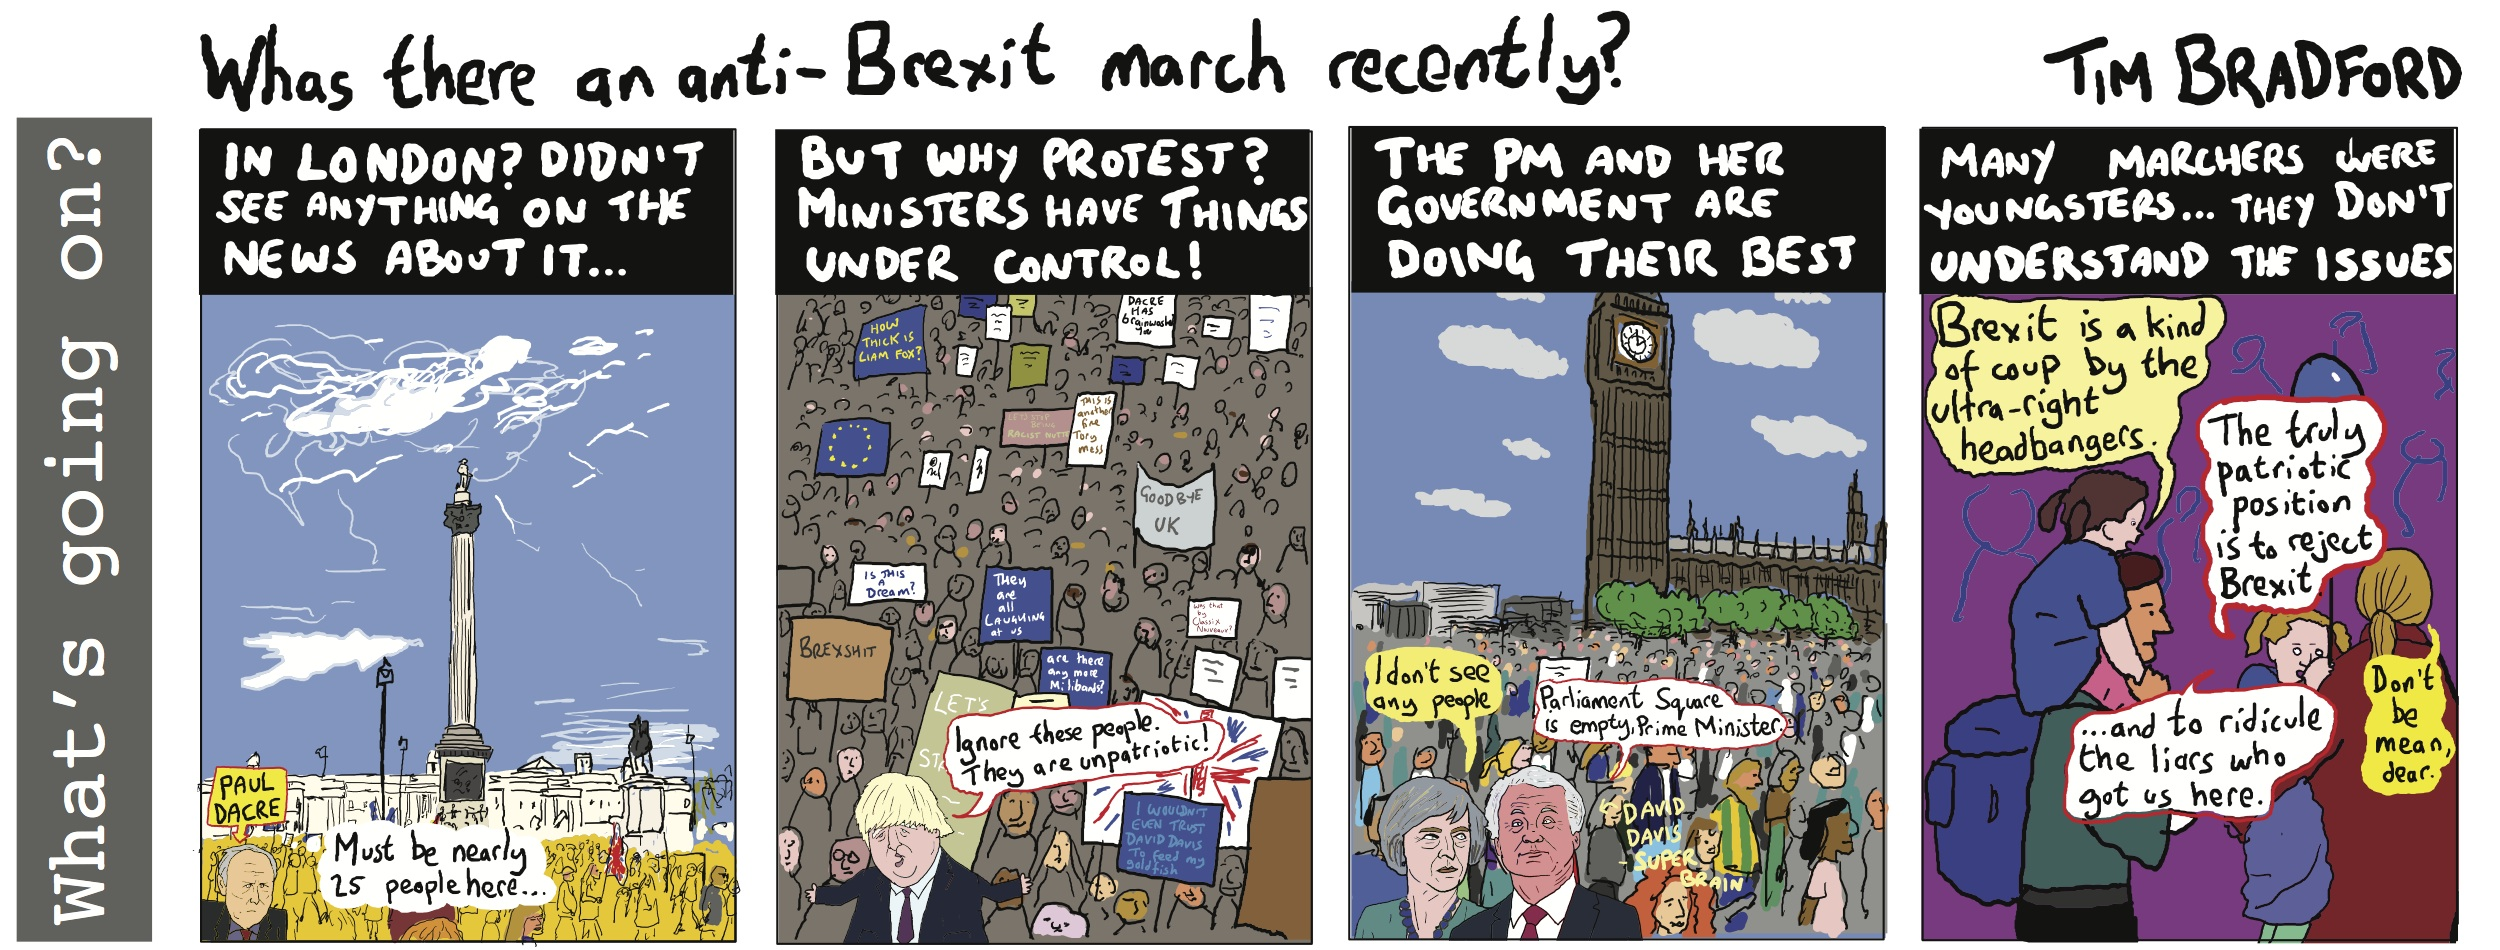 Was there an anti-Brexit march recently? - 28/03/17